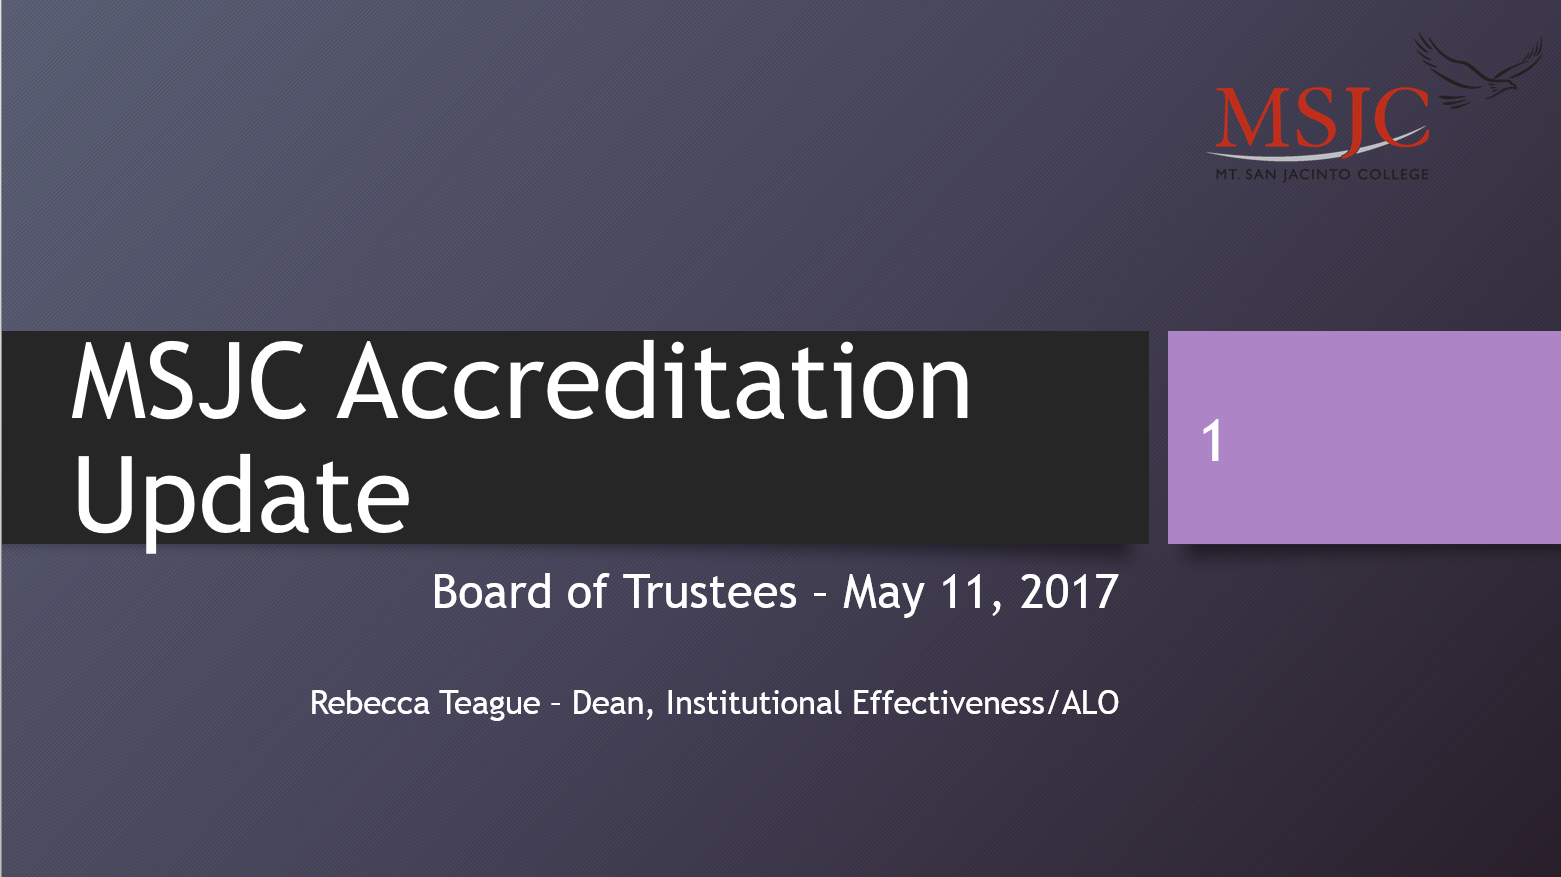 Accreditation Update for Board of Trustees, May 11, 2017